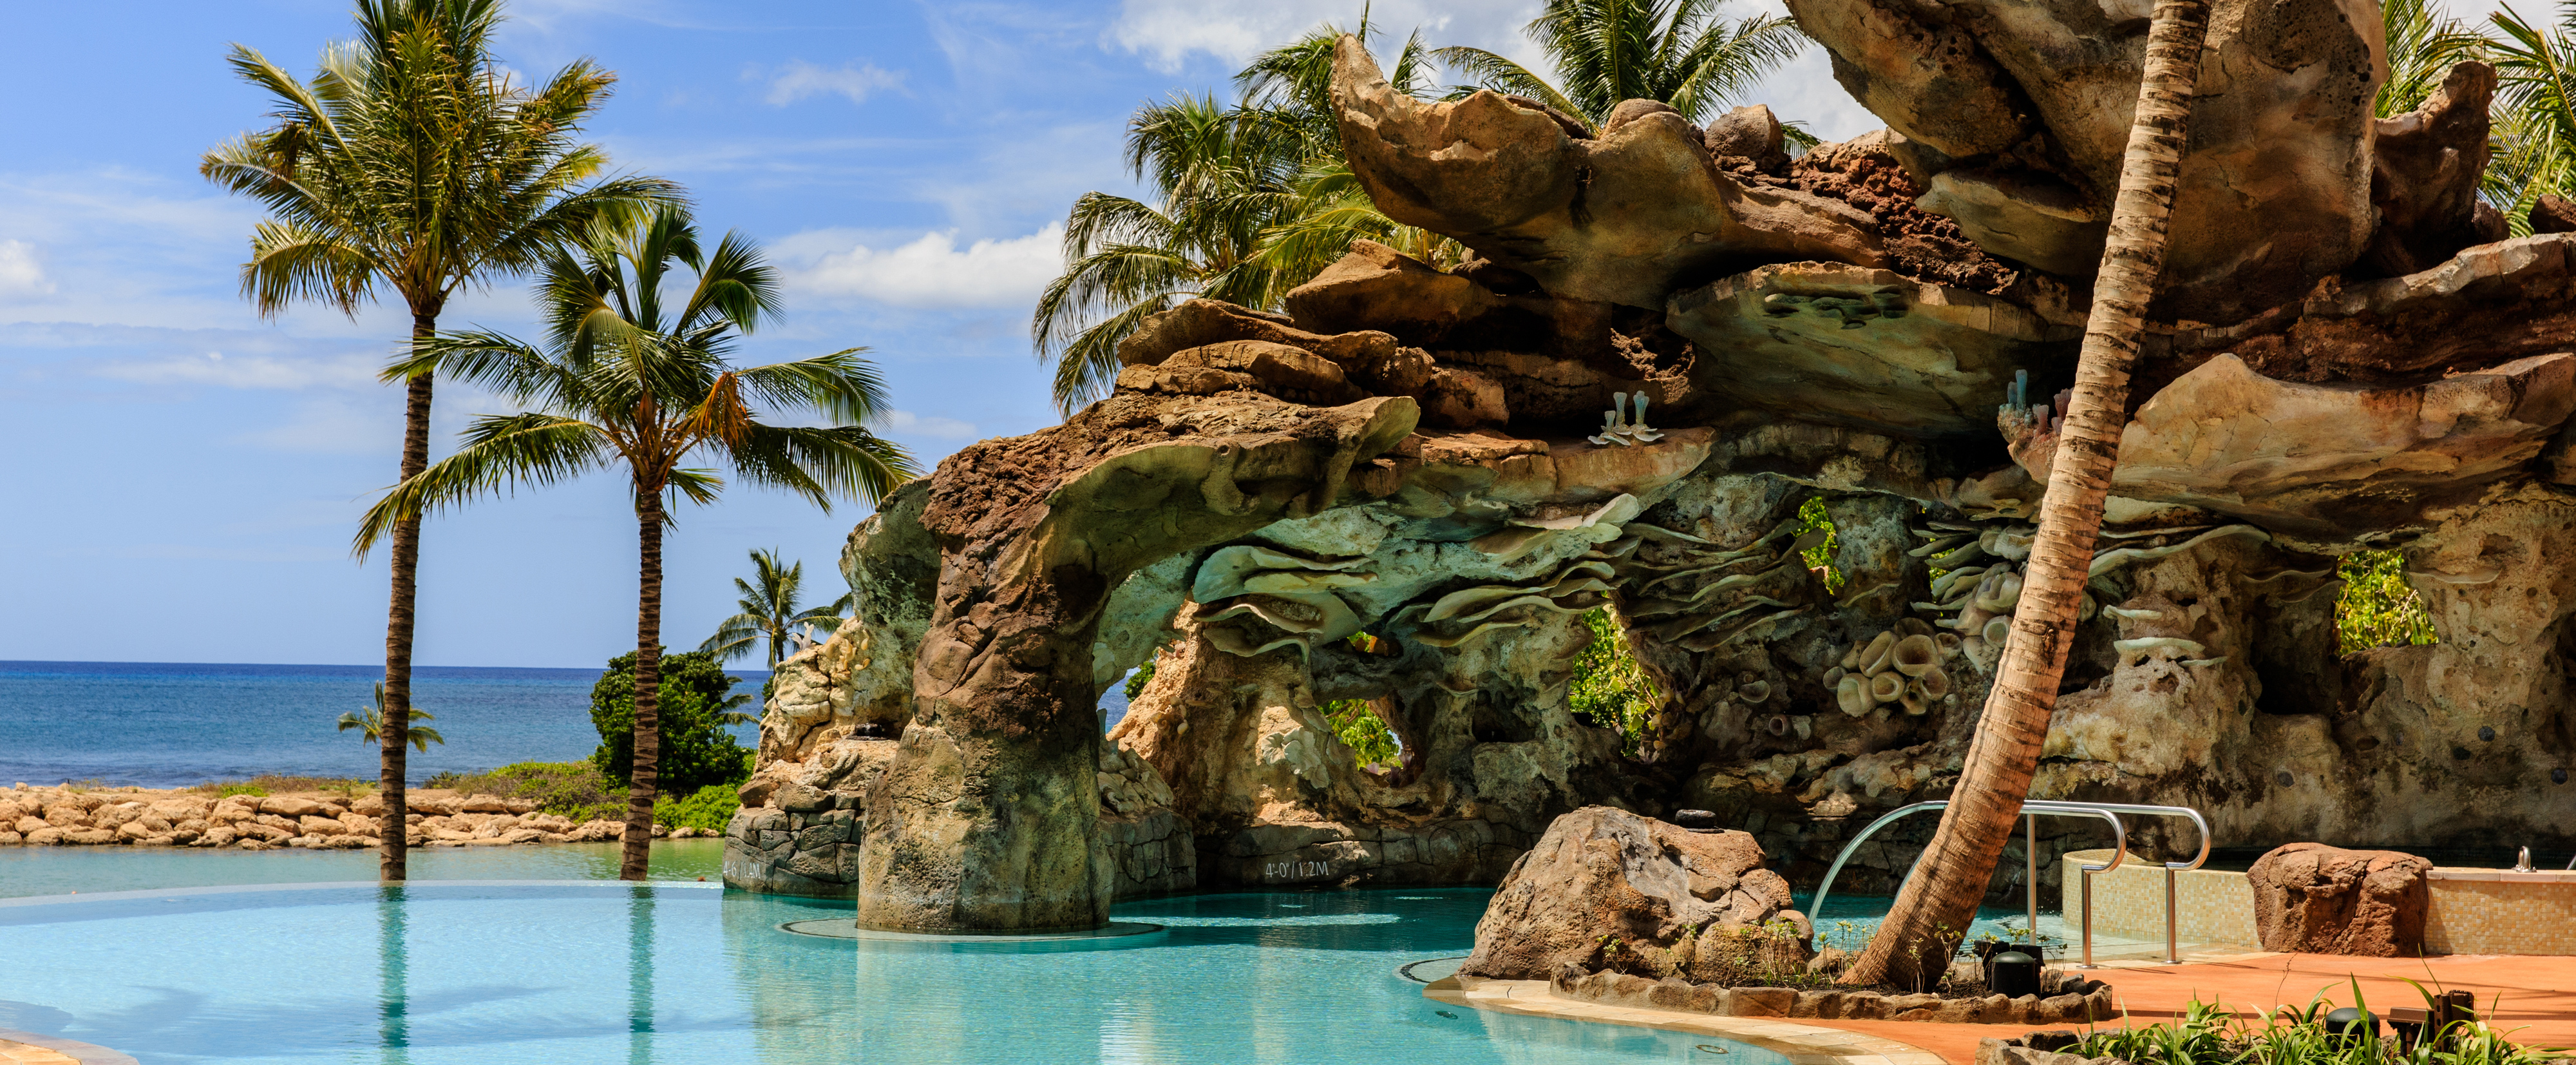 ocean themed outcropping and several palm trees surround the ka maka grotto